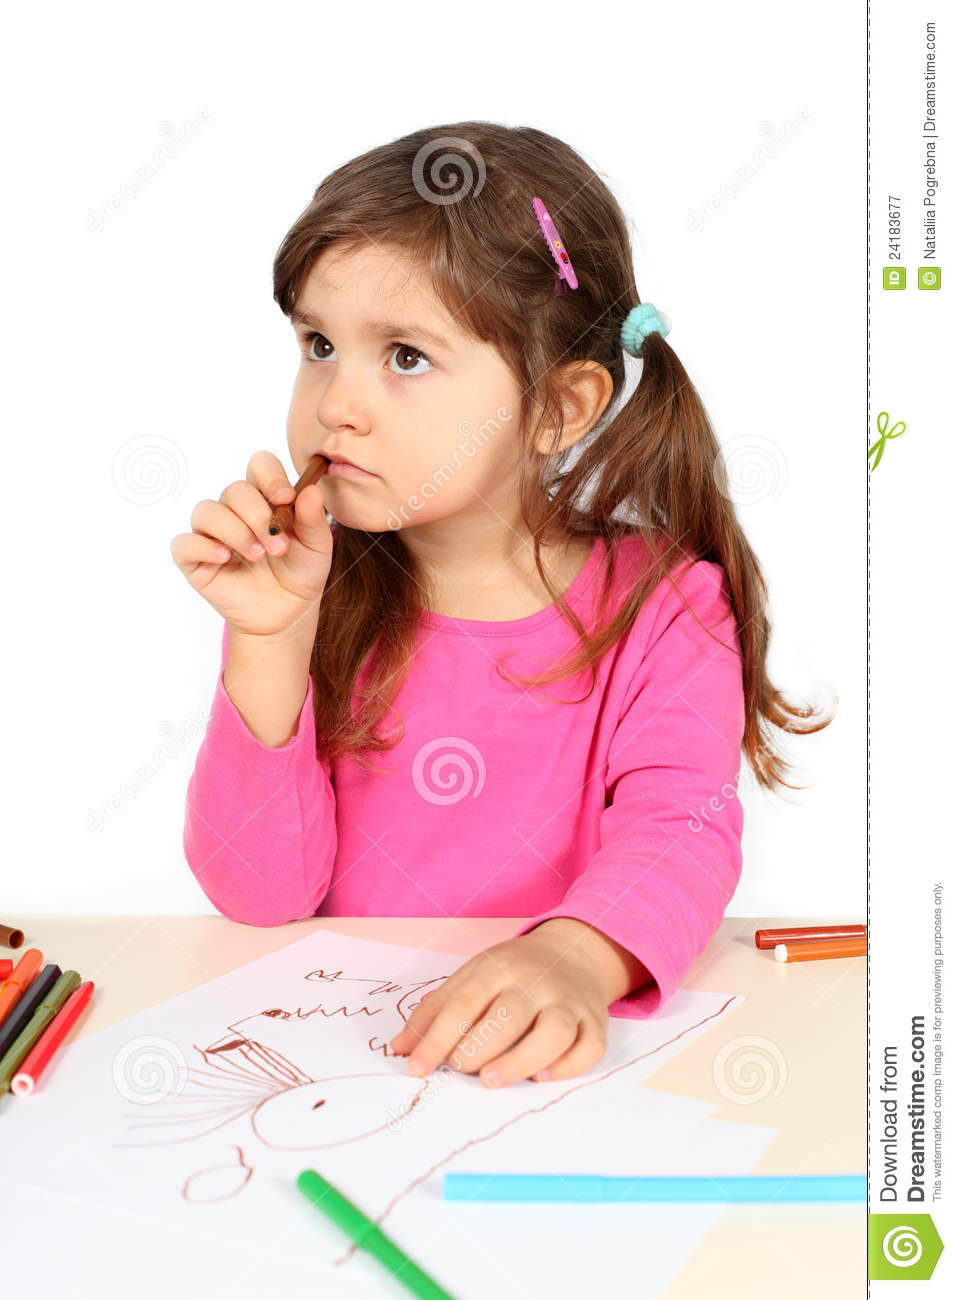 Little Girl Thinking Over Drawing Stock Image - Image of ...